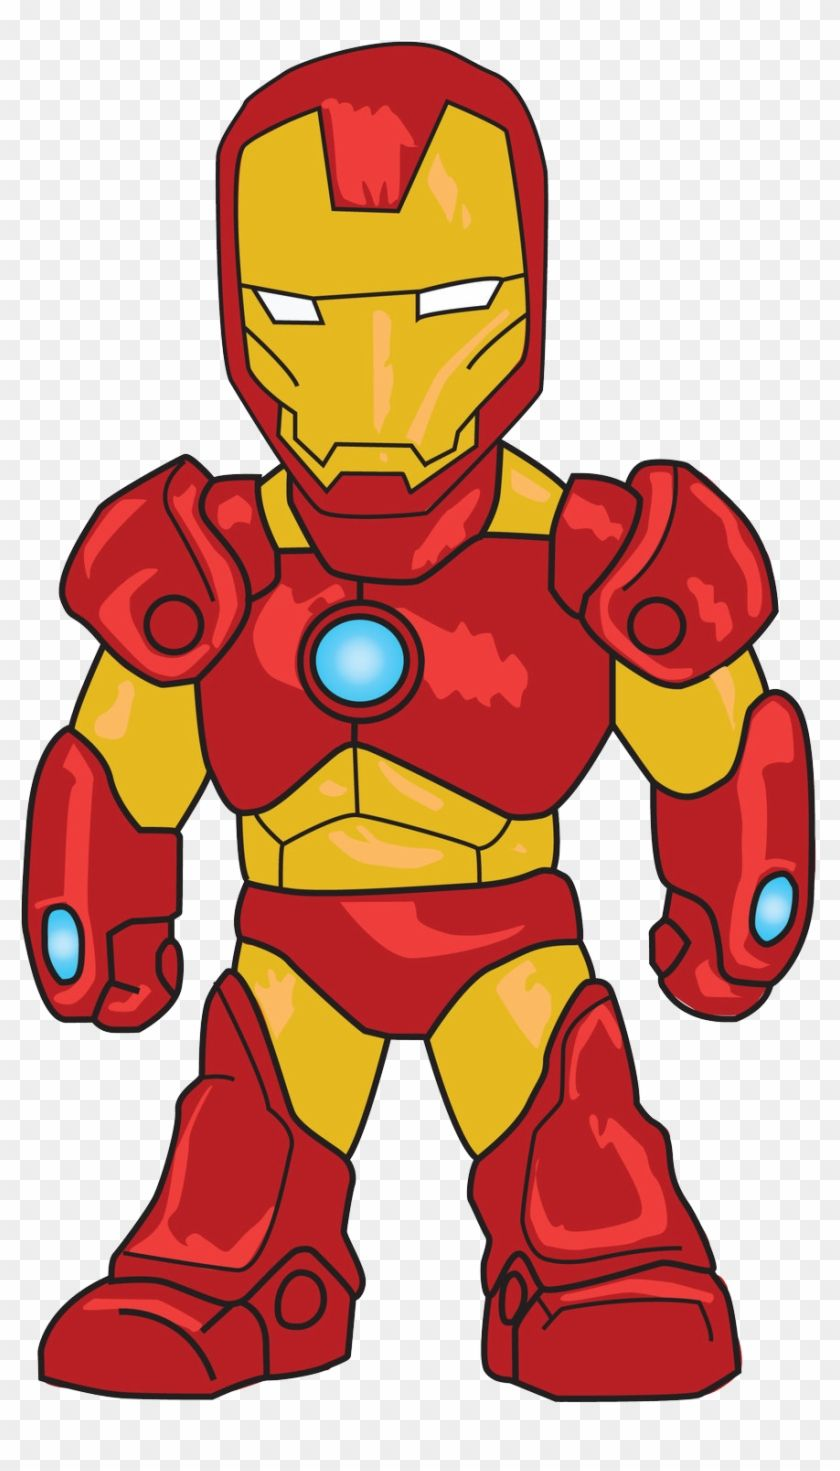 Download And Share Clipart About Iron Man Cartoon Drawing Find More High Quality Free Transparent Png Clipart I Iron Man Cartoon Iron Man Art Iron Man Drawing